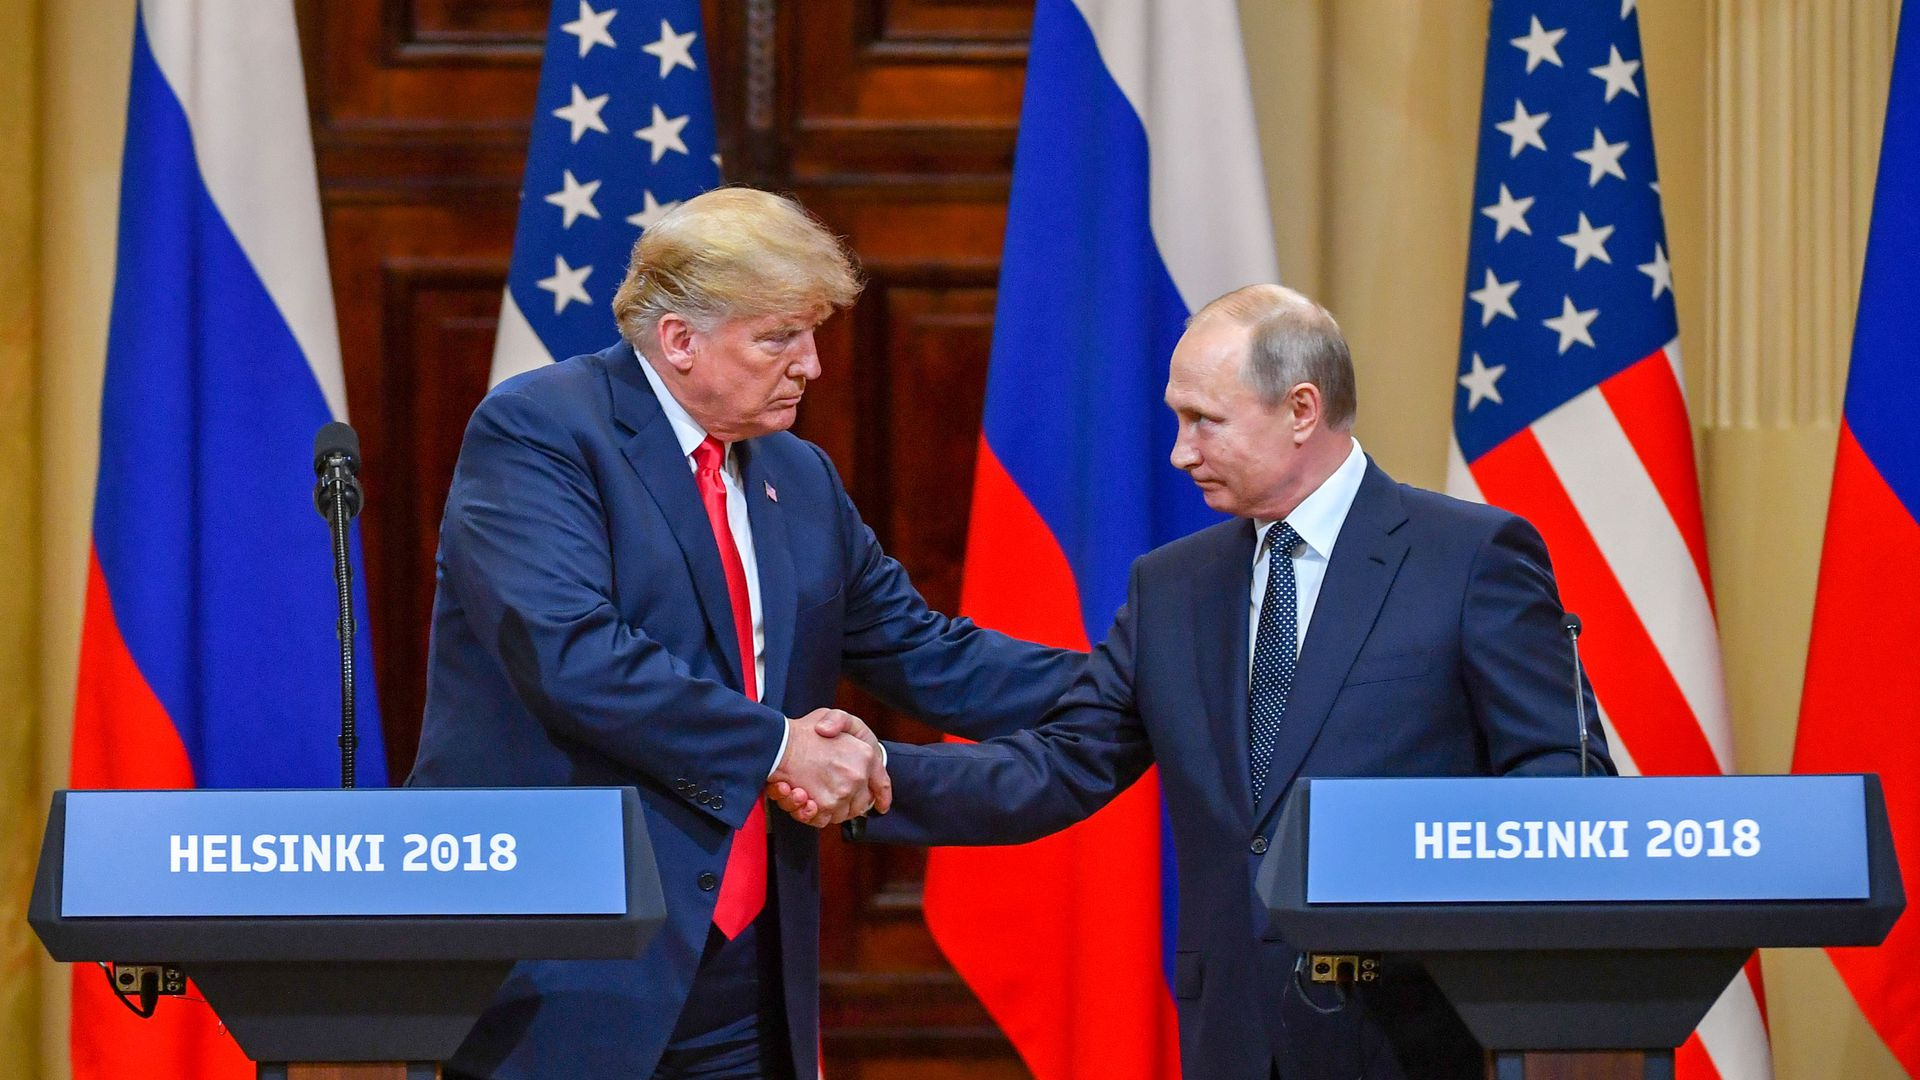 Trump and Putin shake hands